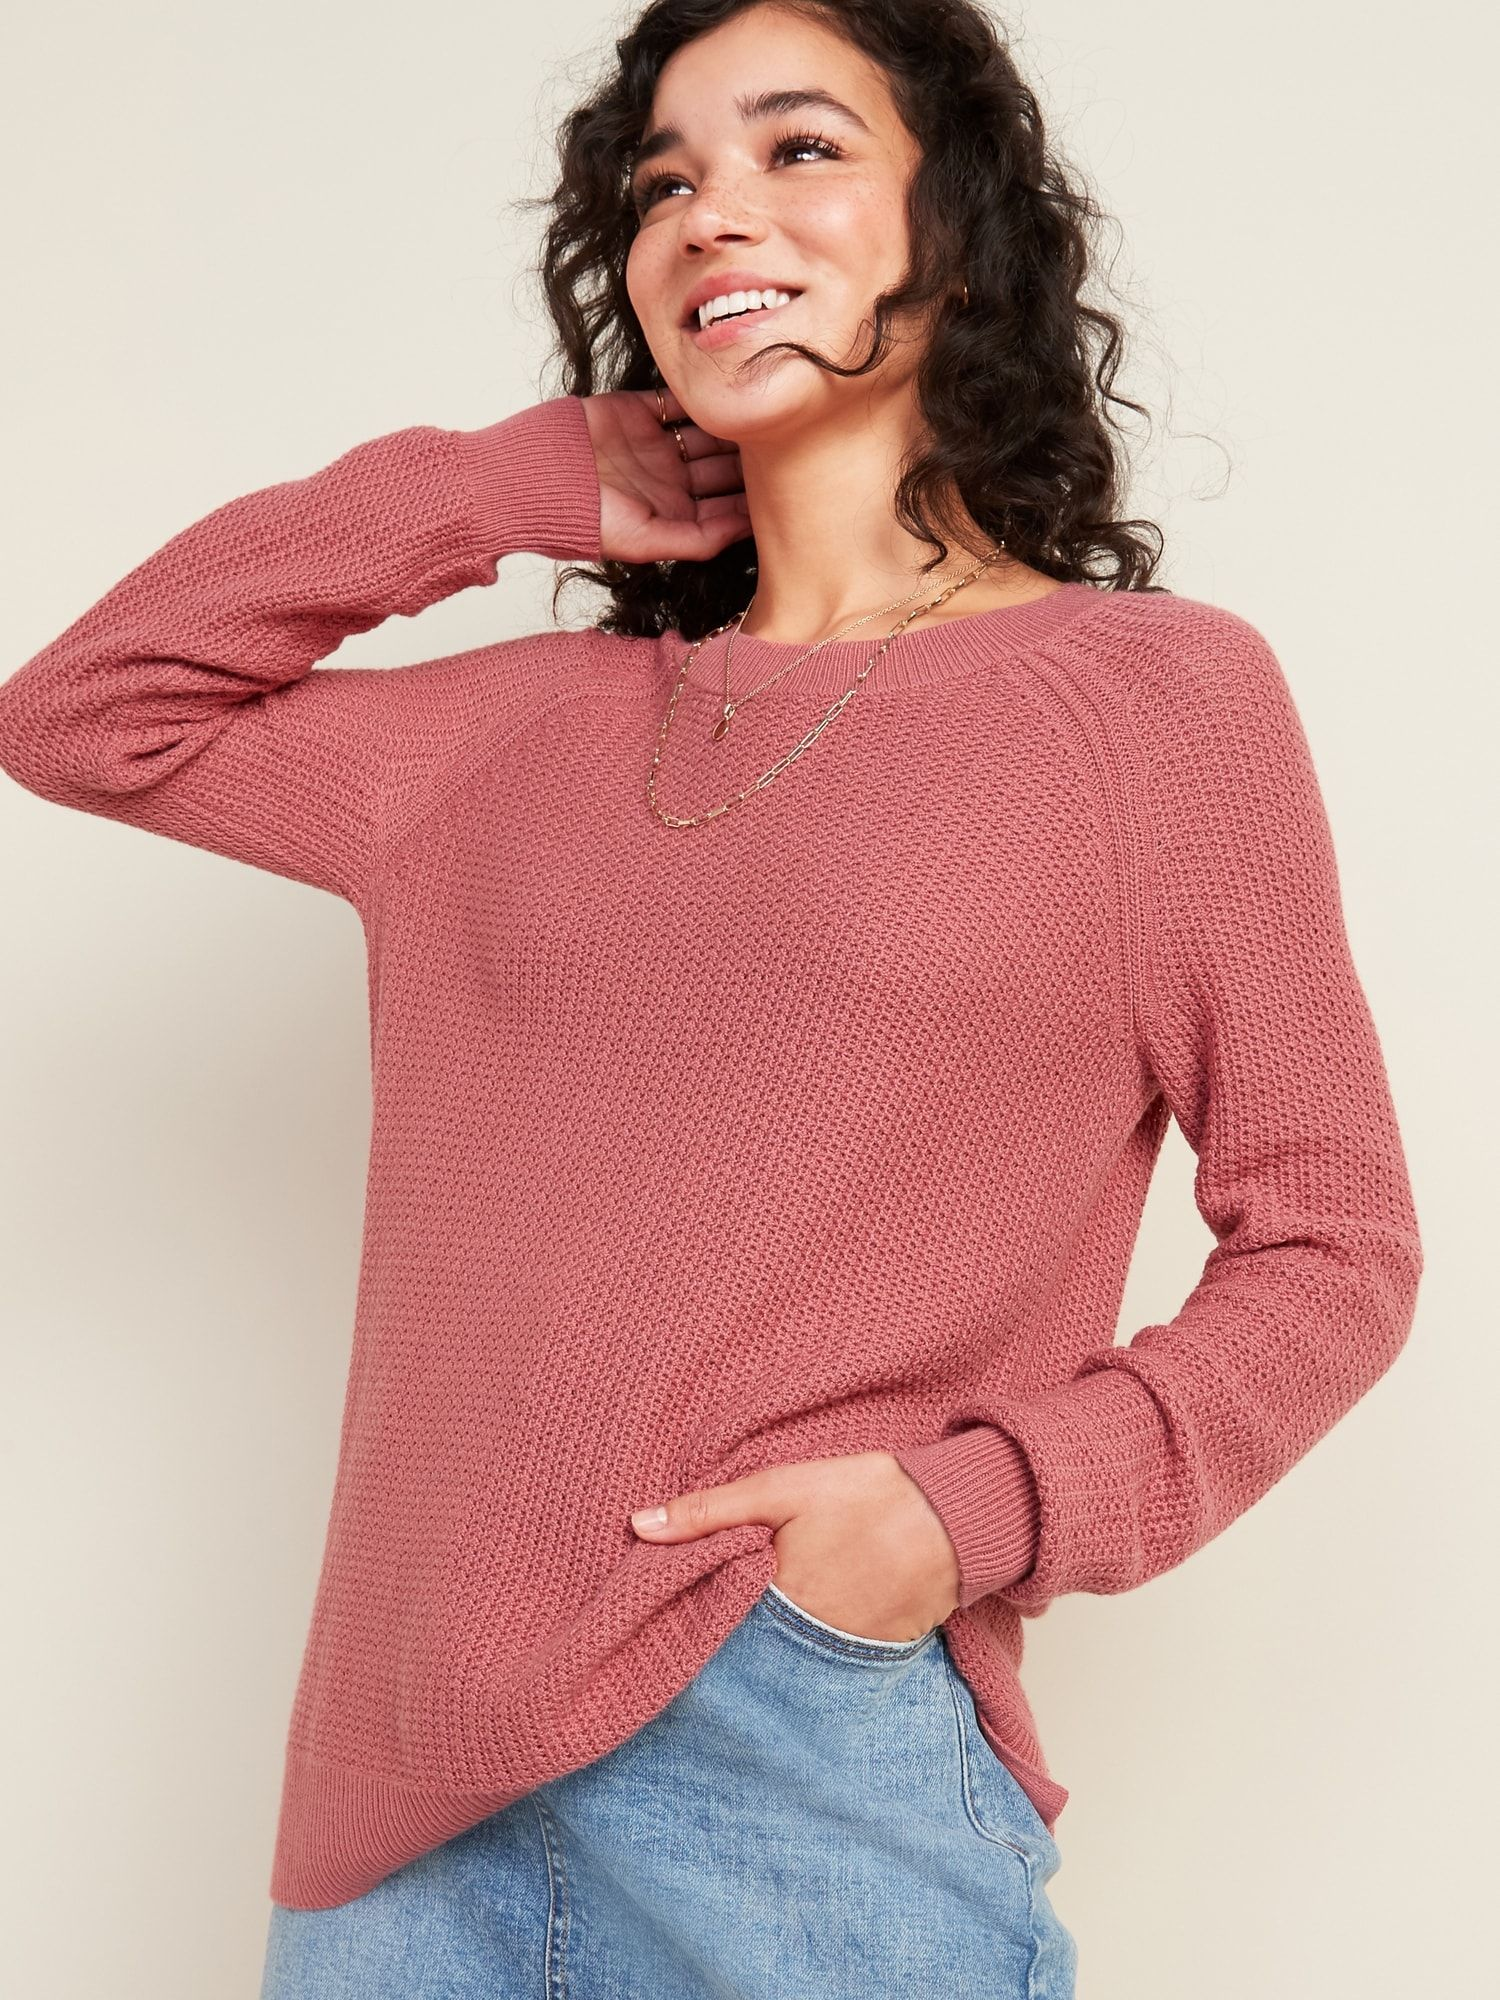 Textured Crew Neck Sweater For Women Old Navy Sweaters For Women Sweaters Textured Sweater [ 2000 x 1500 Pixel ]